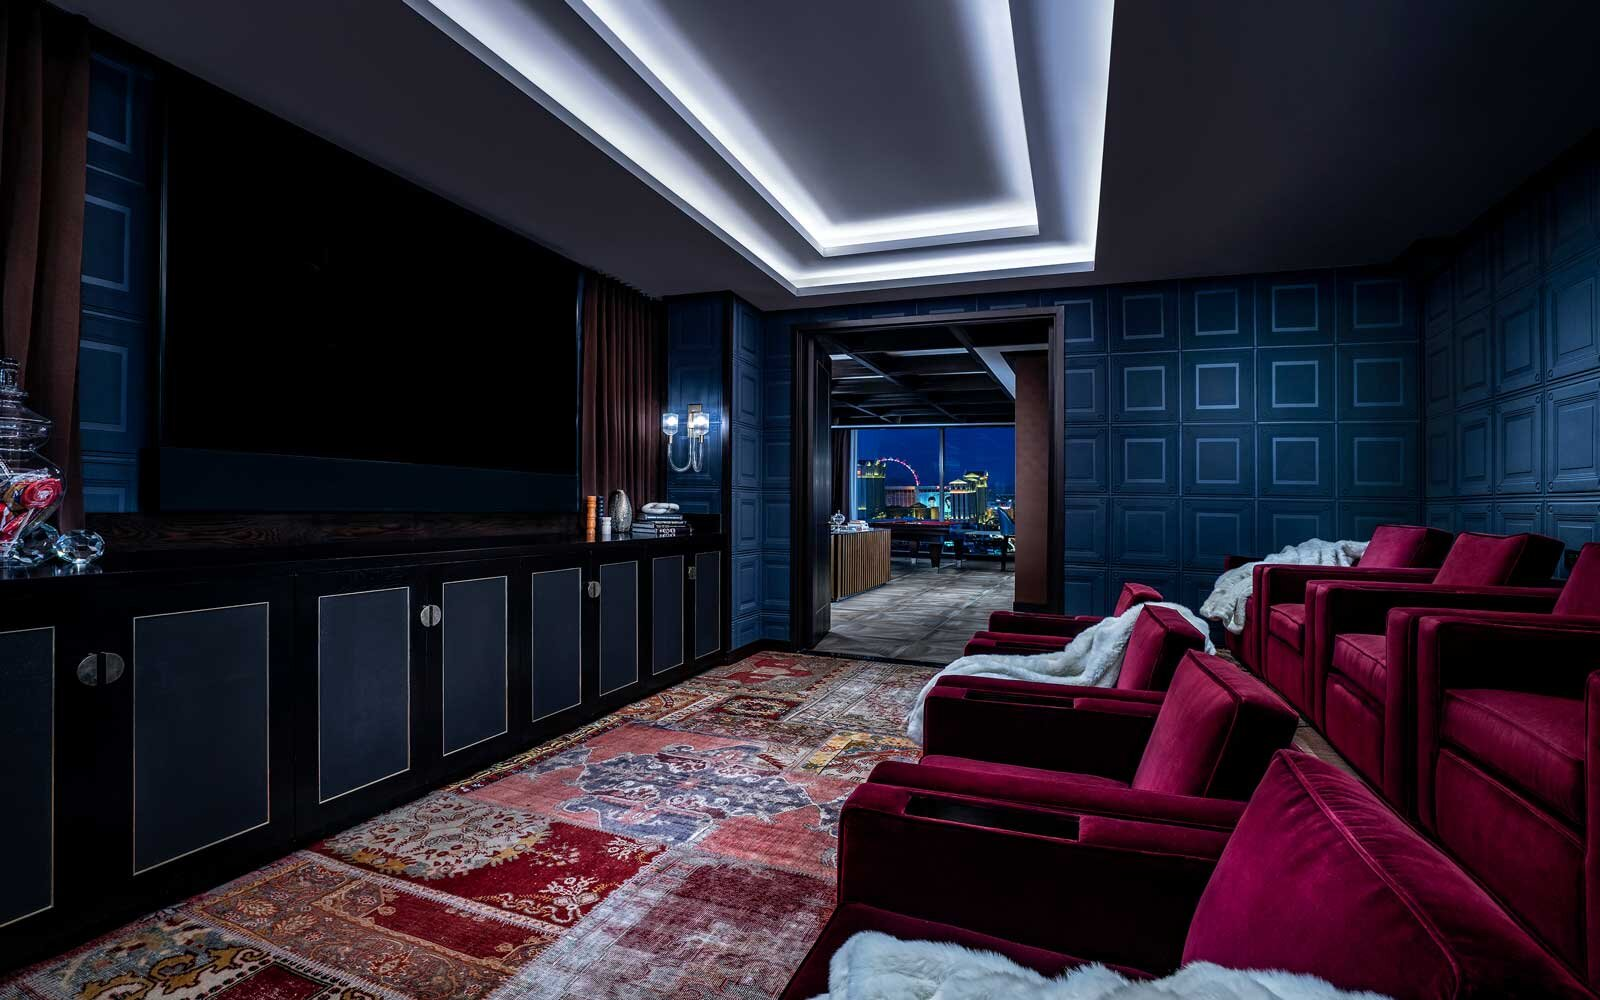 This Las Vegas Resort S New Suites Have Basketball Courts Movie Theaters And Bowling Alleys Inside Travel Leisure